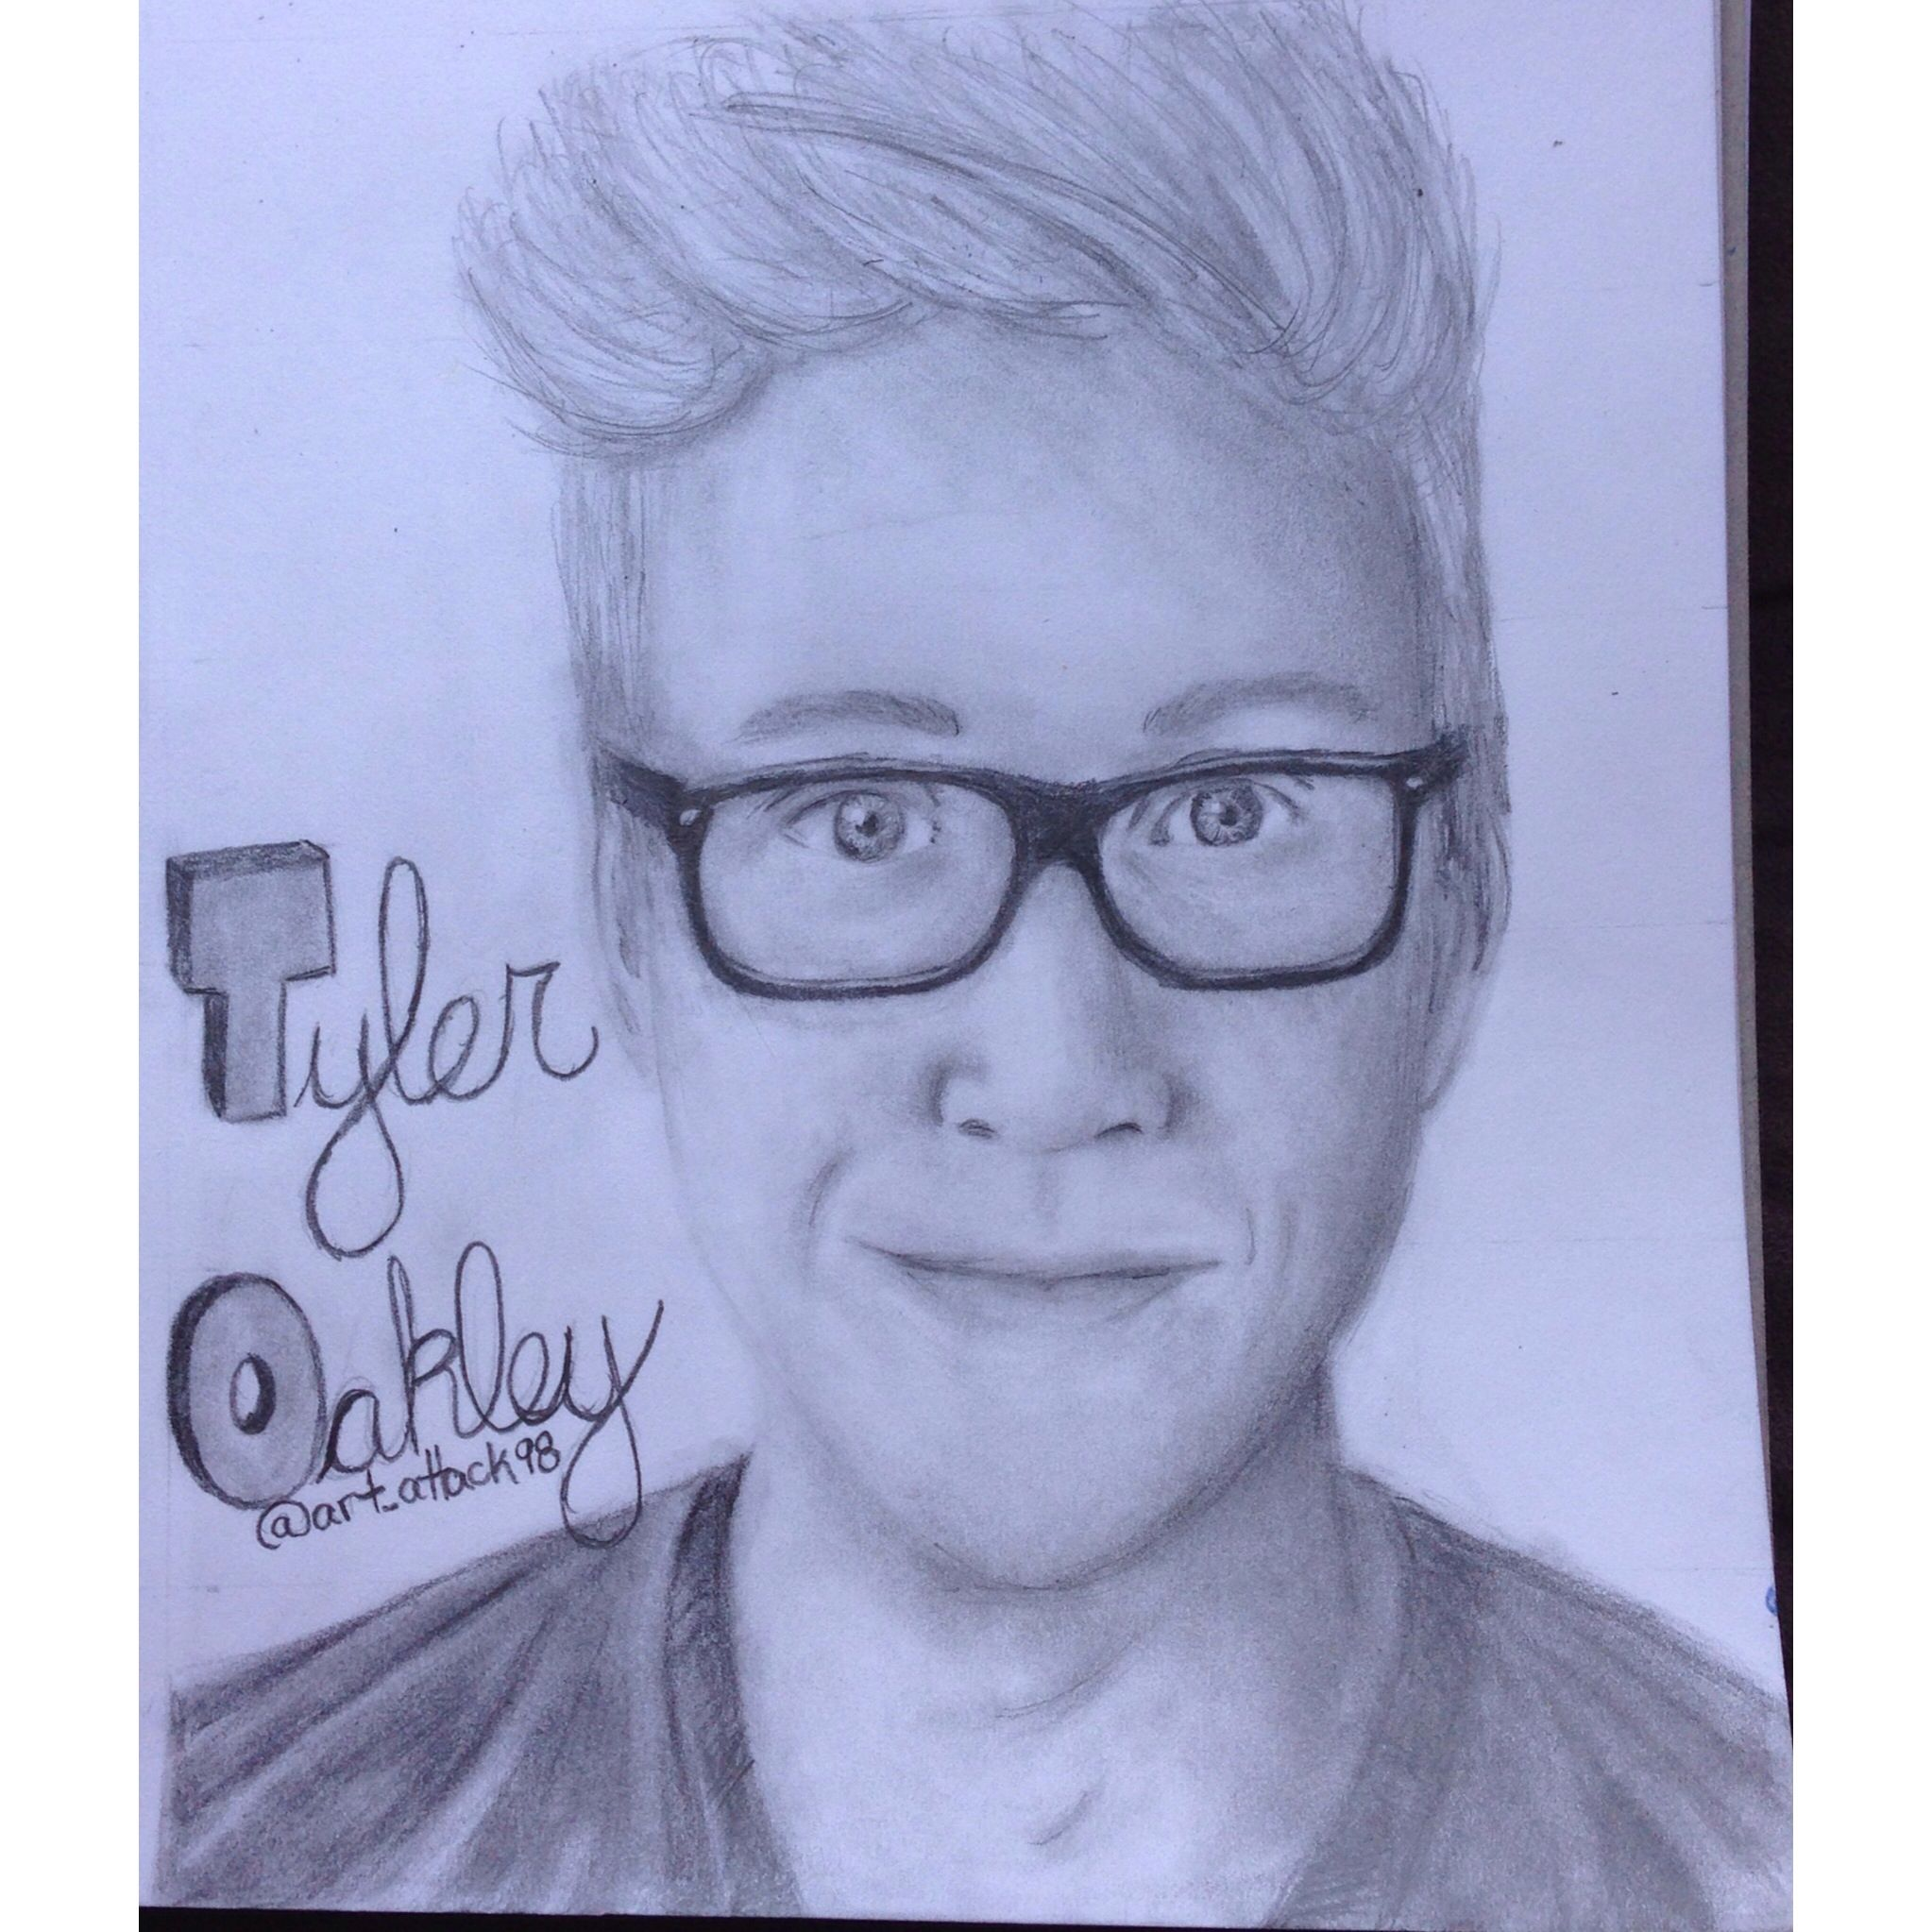 tyler oakley hi tyler so this is a drawing i did of you